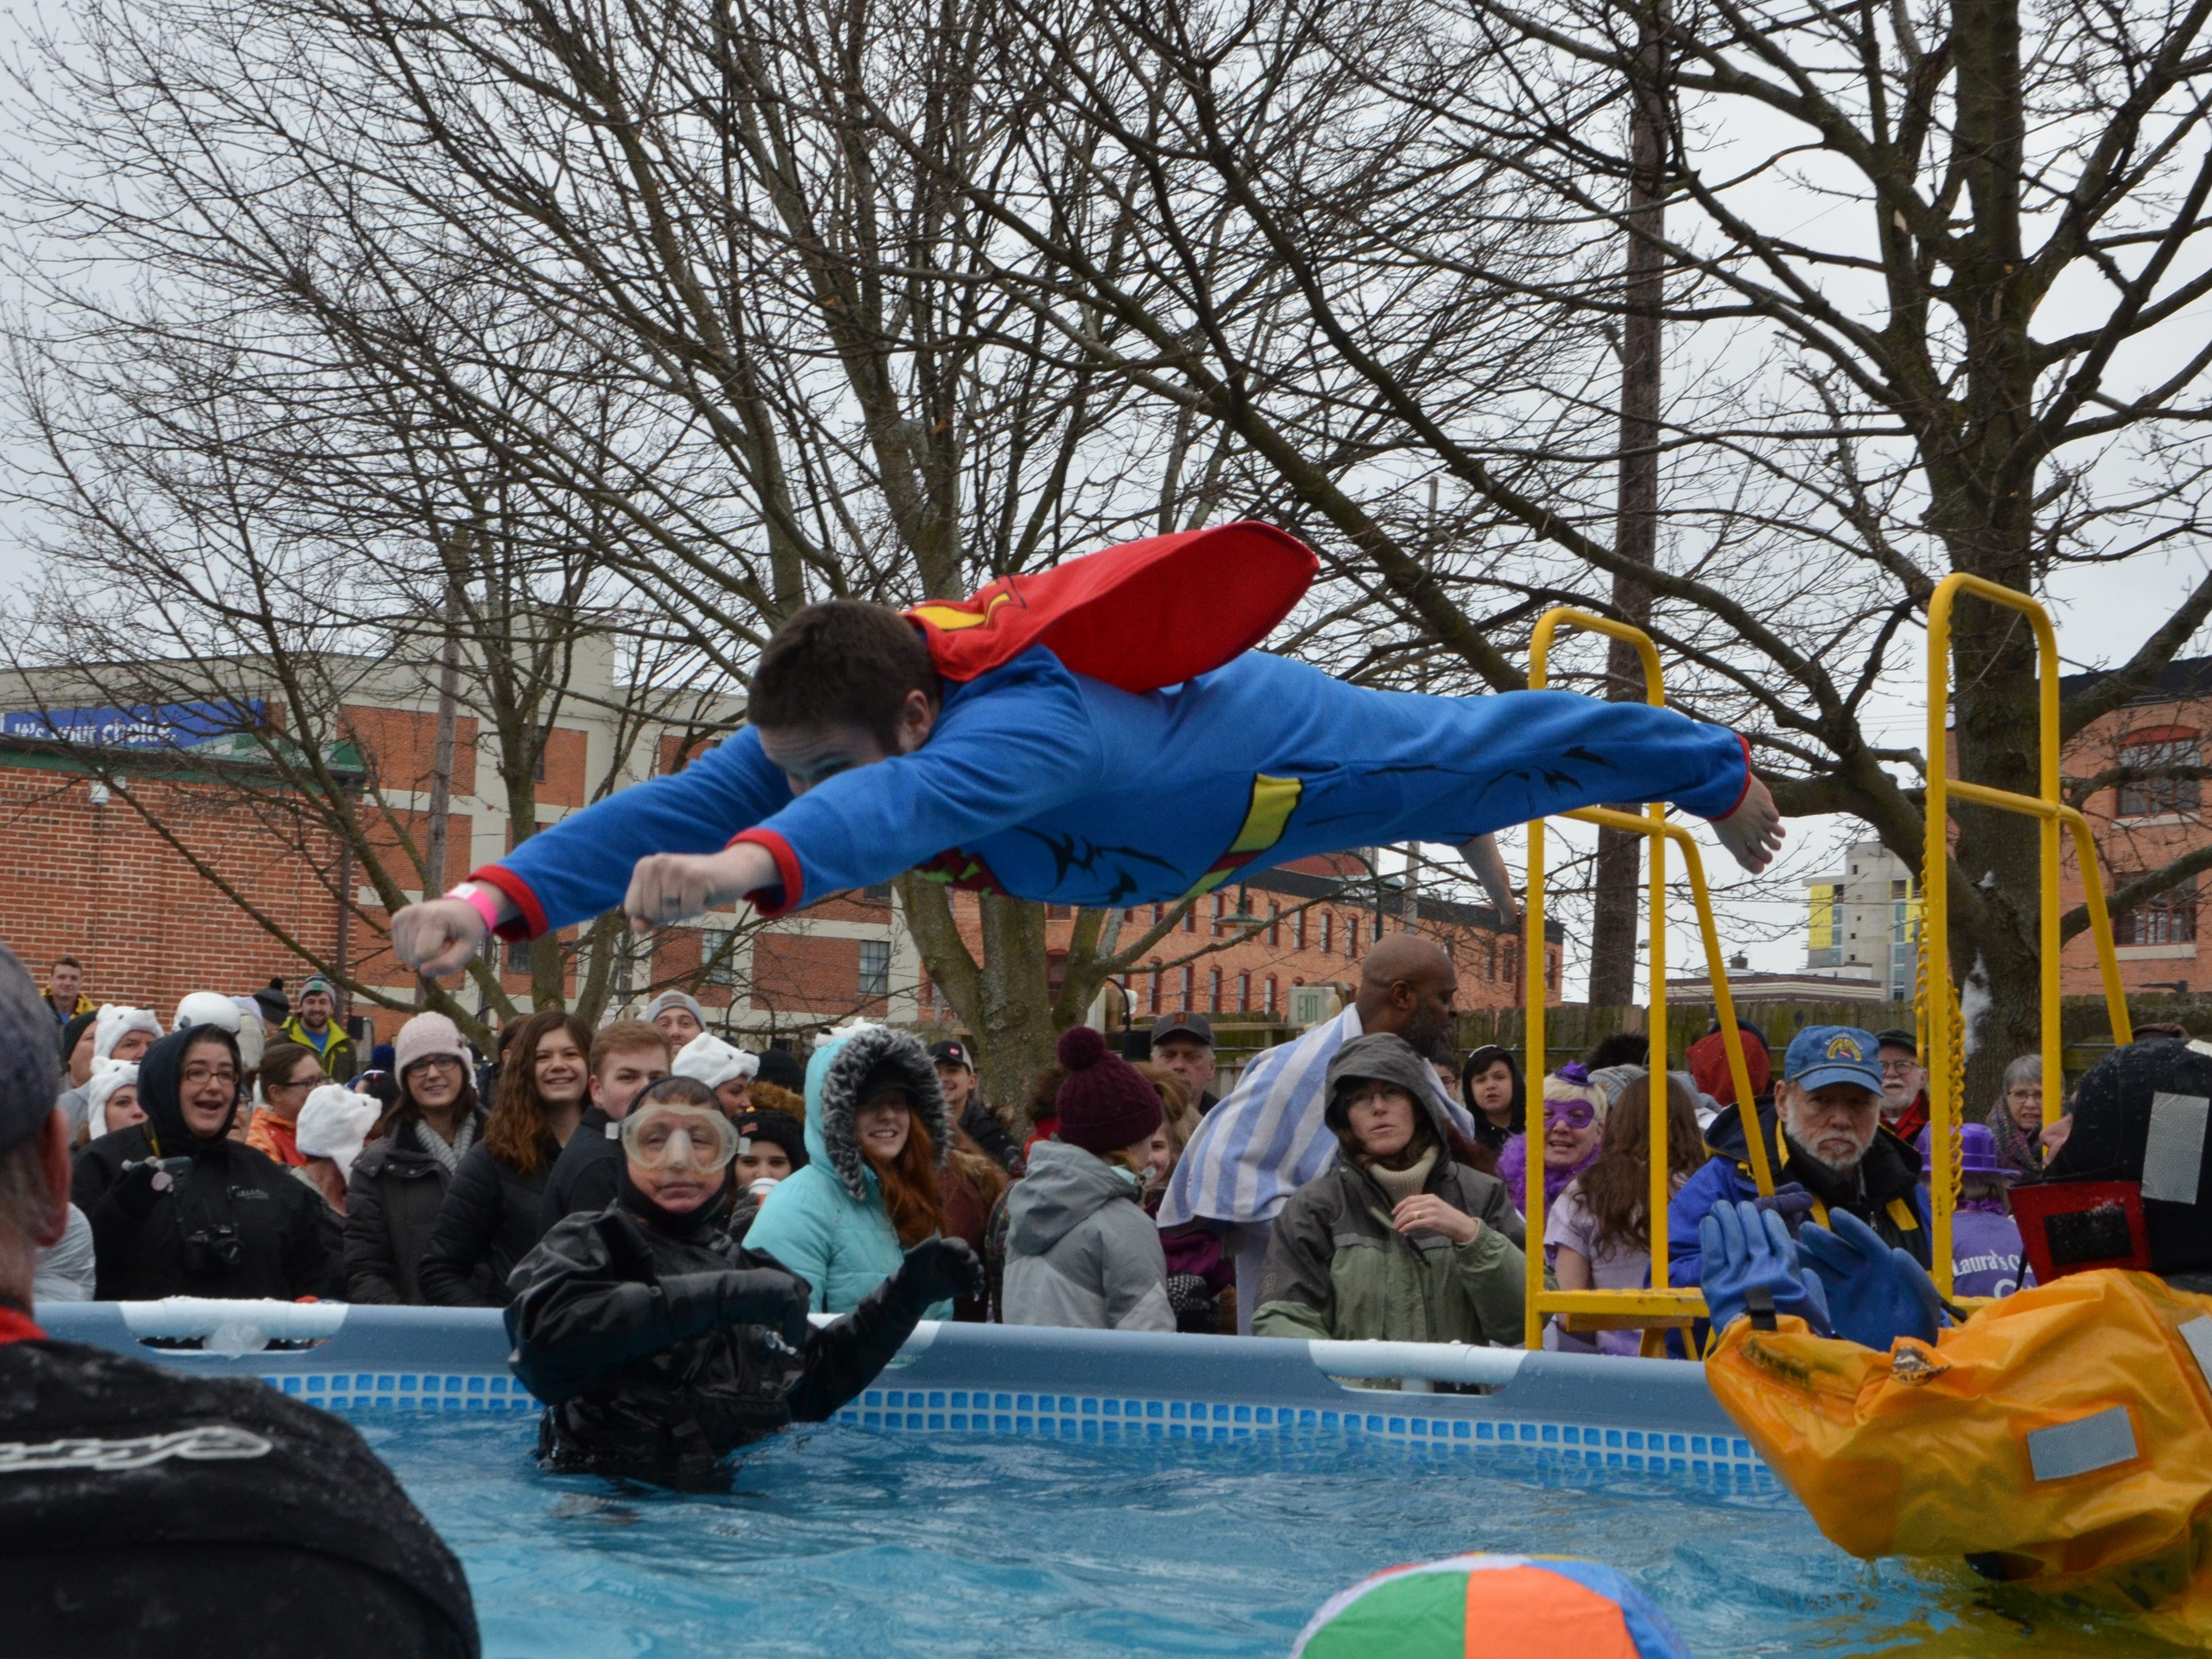 The Calhoun and Kalamazoo County Polar Plunge for Special Olympics Michigan at Bell's Eccentric Cafe in Kalamazoo on Saturday, February 16, 2019.